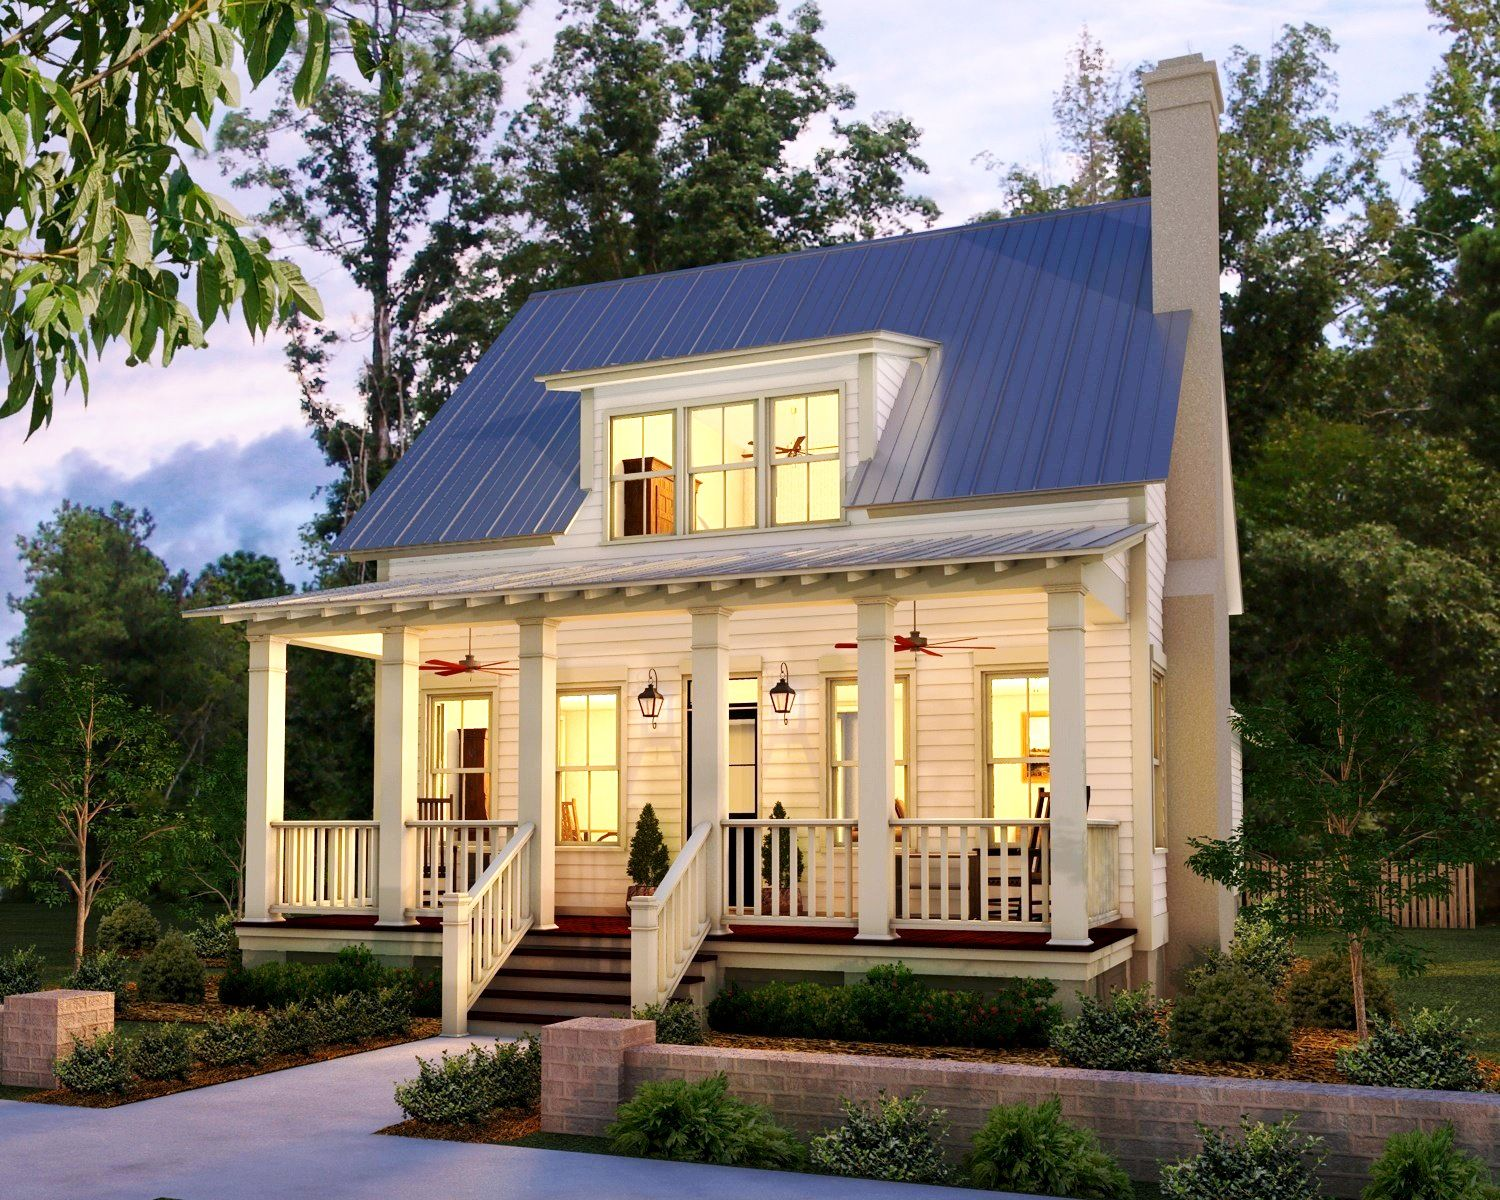 Terrific 17 Best Ideas About Small Houses On Pinterest Small Homes Tiny Largest Home Design Picture Inspirations Pitcheantrous